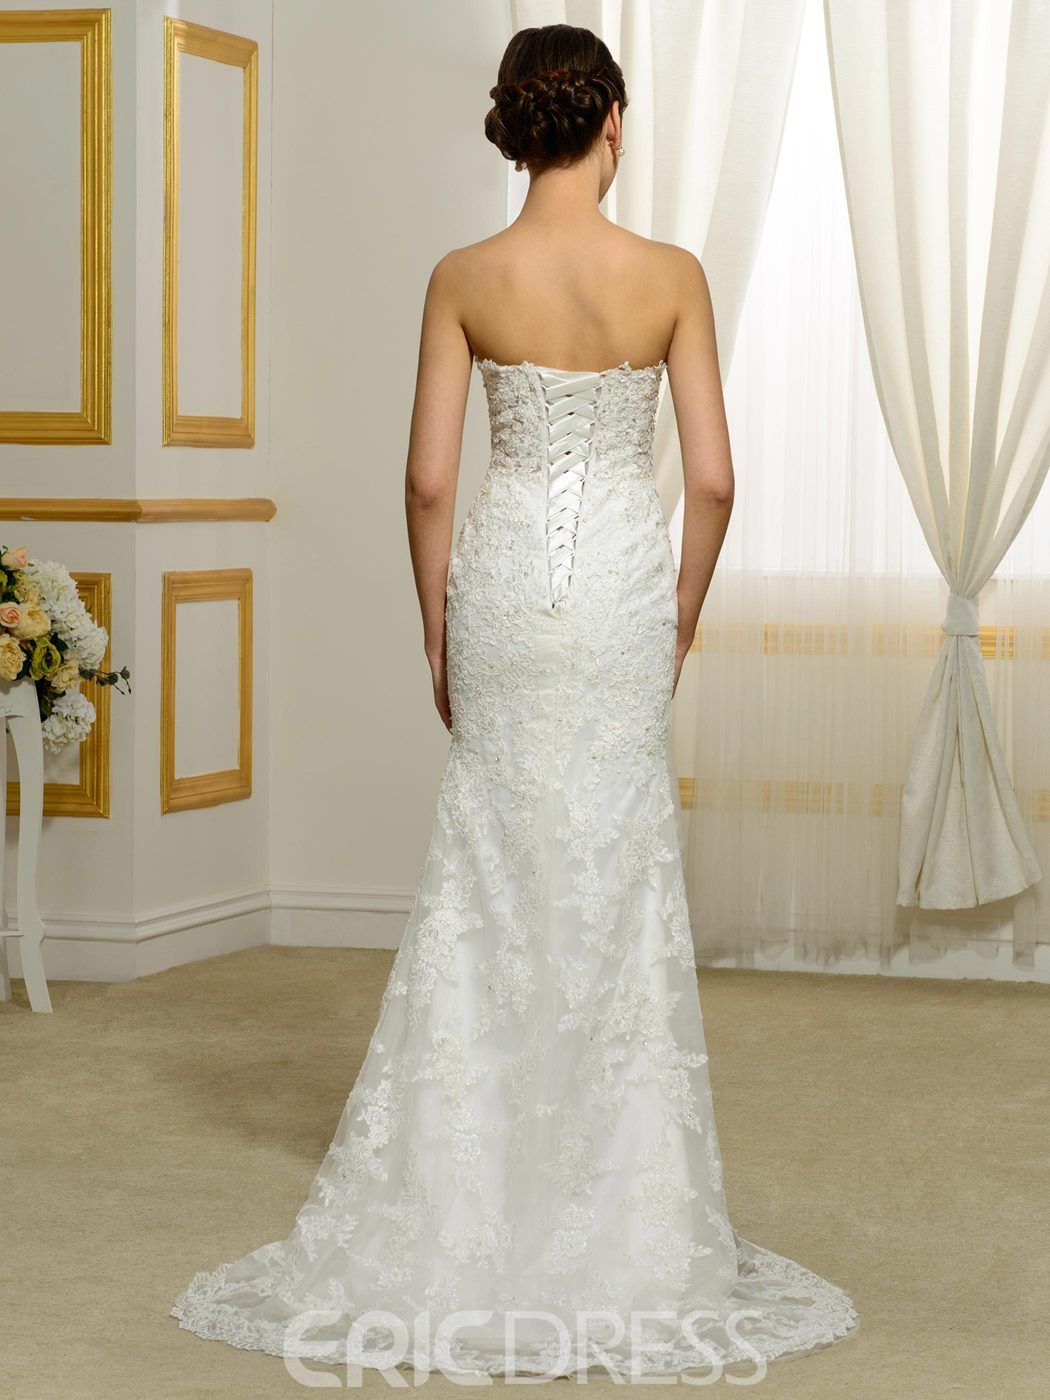 Ericdress Morden Sweetheart Appliques Beaded Mermaid Wedding Dress